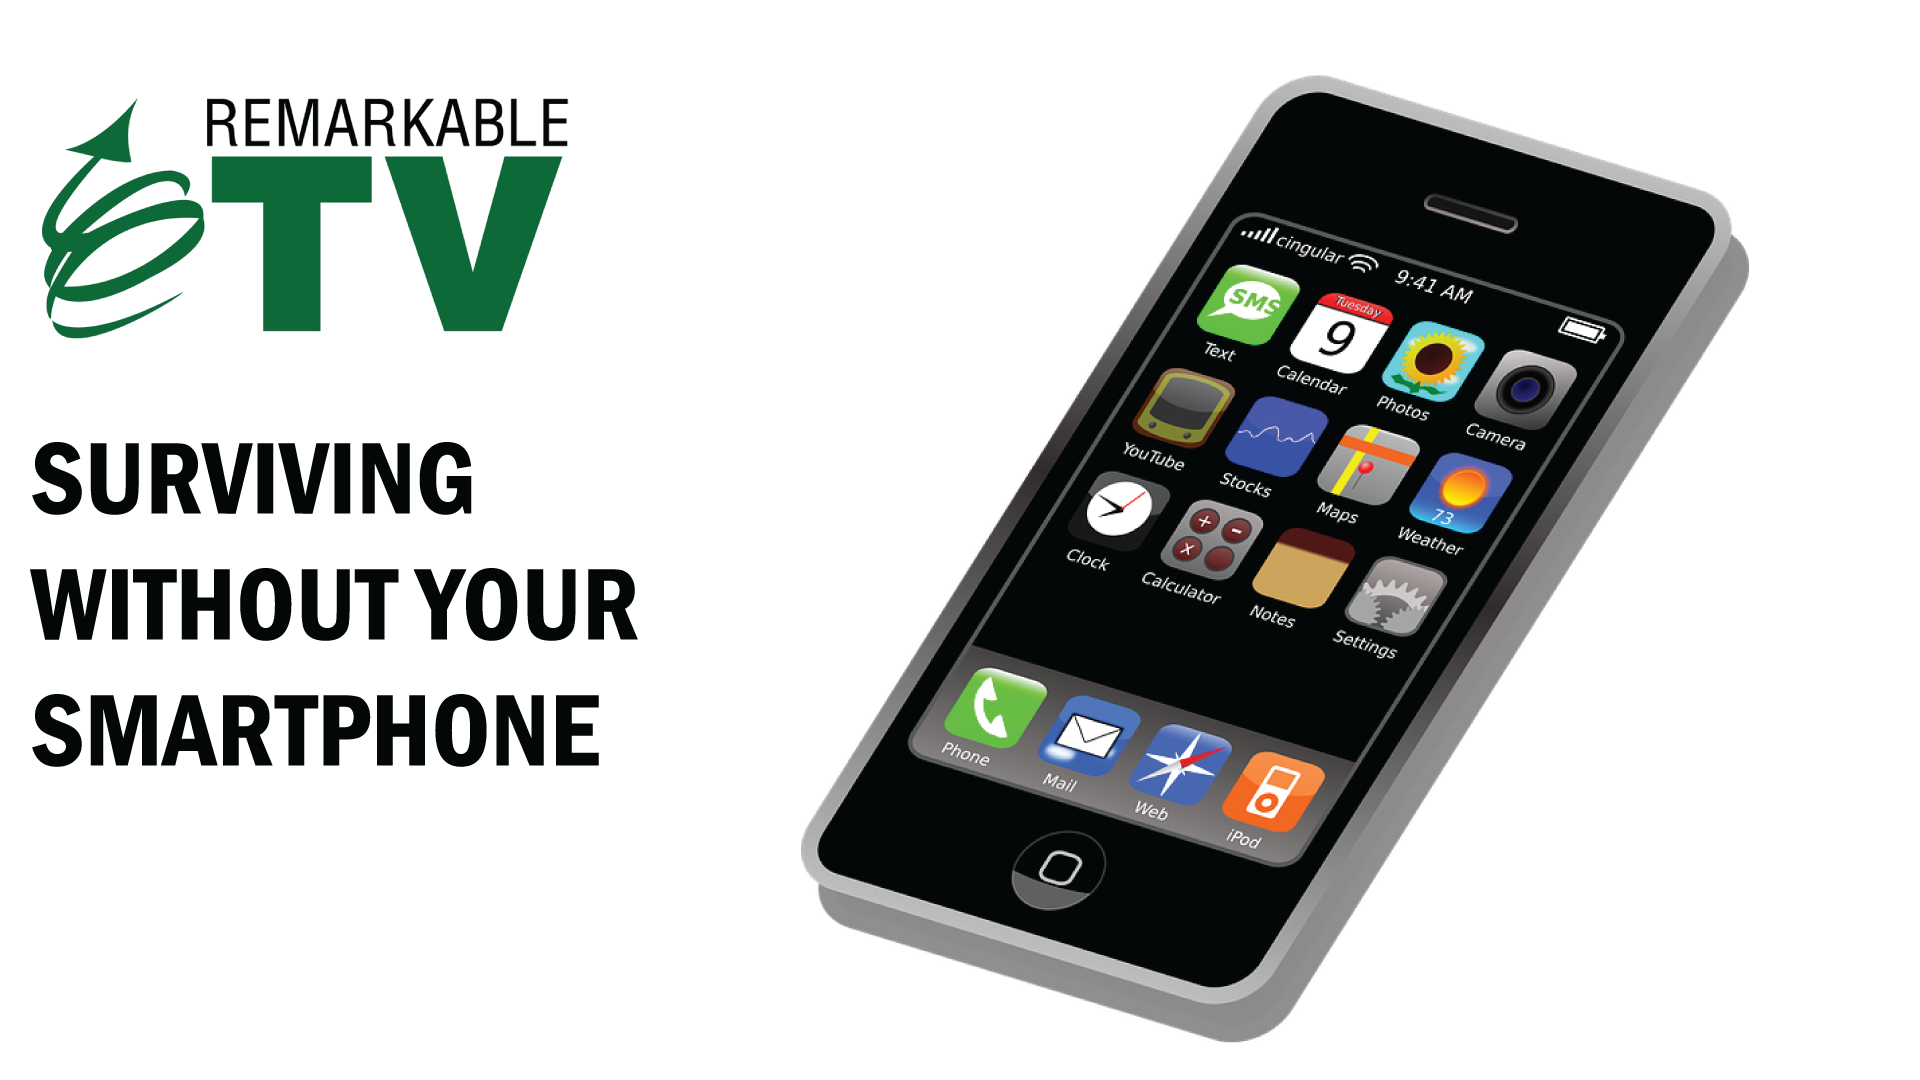 Surviving without your smartphone - Remarkable TV with Kevin Eikenberry